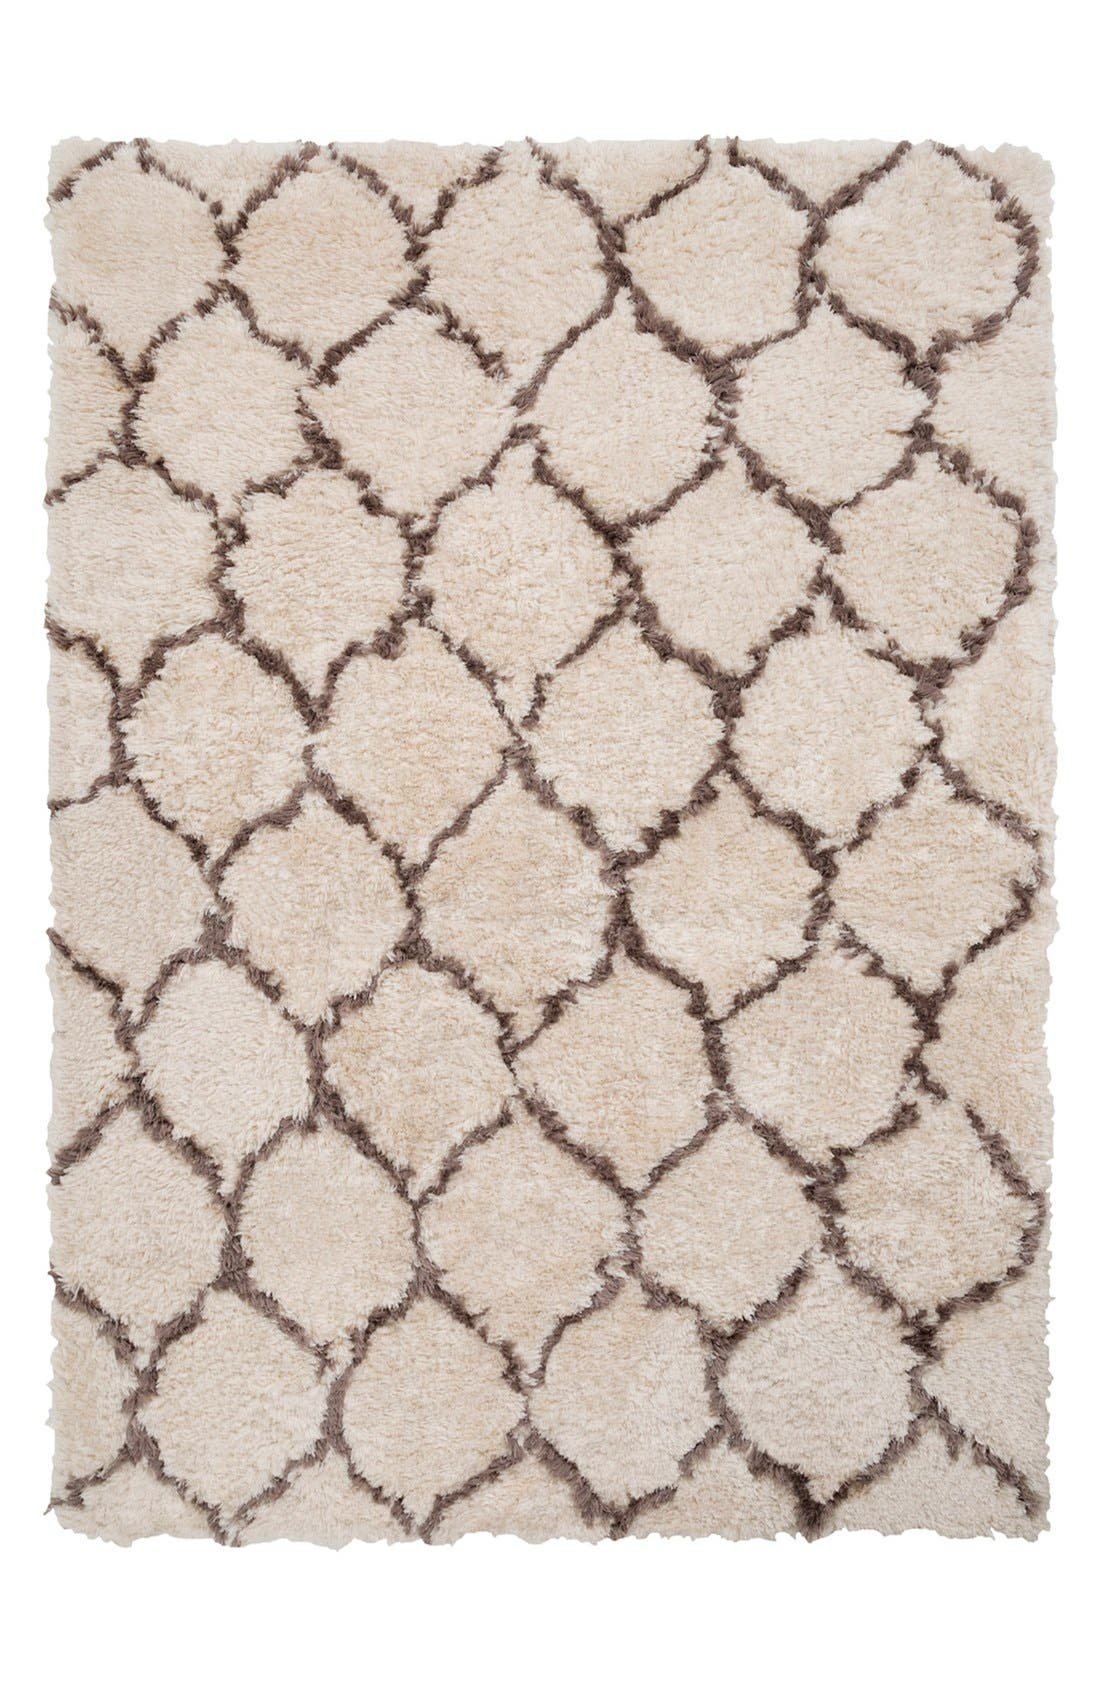 'Scout' Hand Tufted Rug,                             Main thumbnail 1, color,                             020